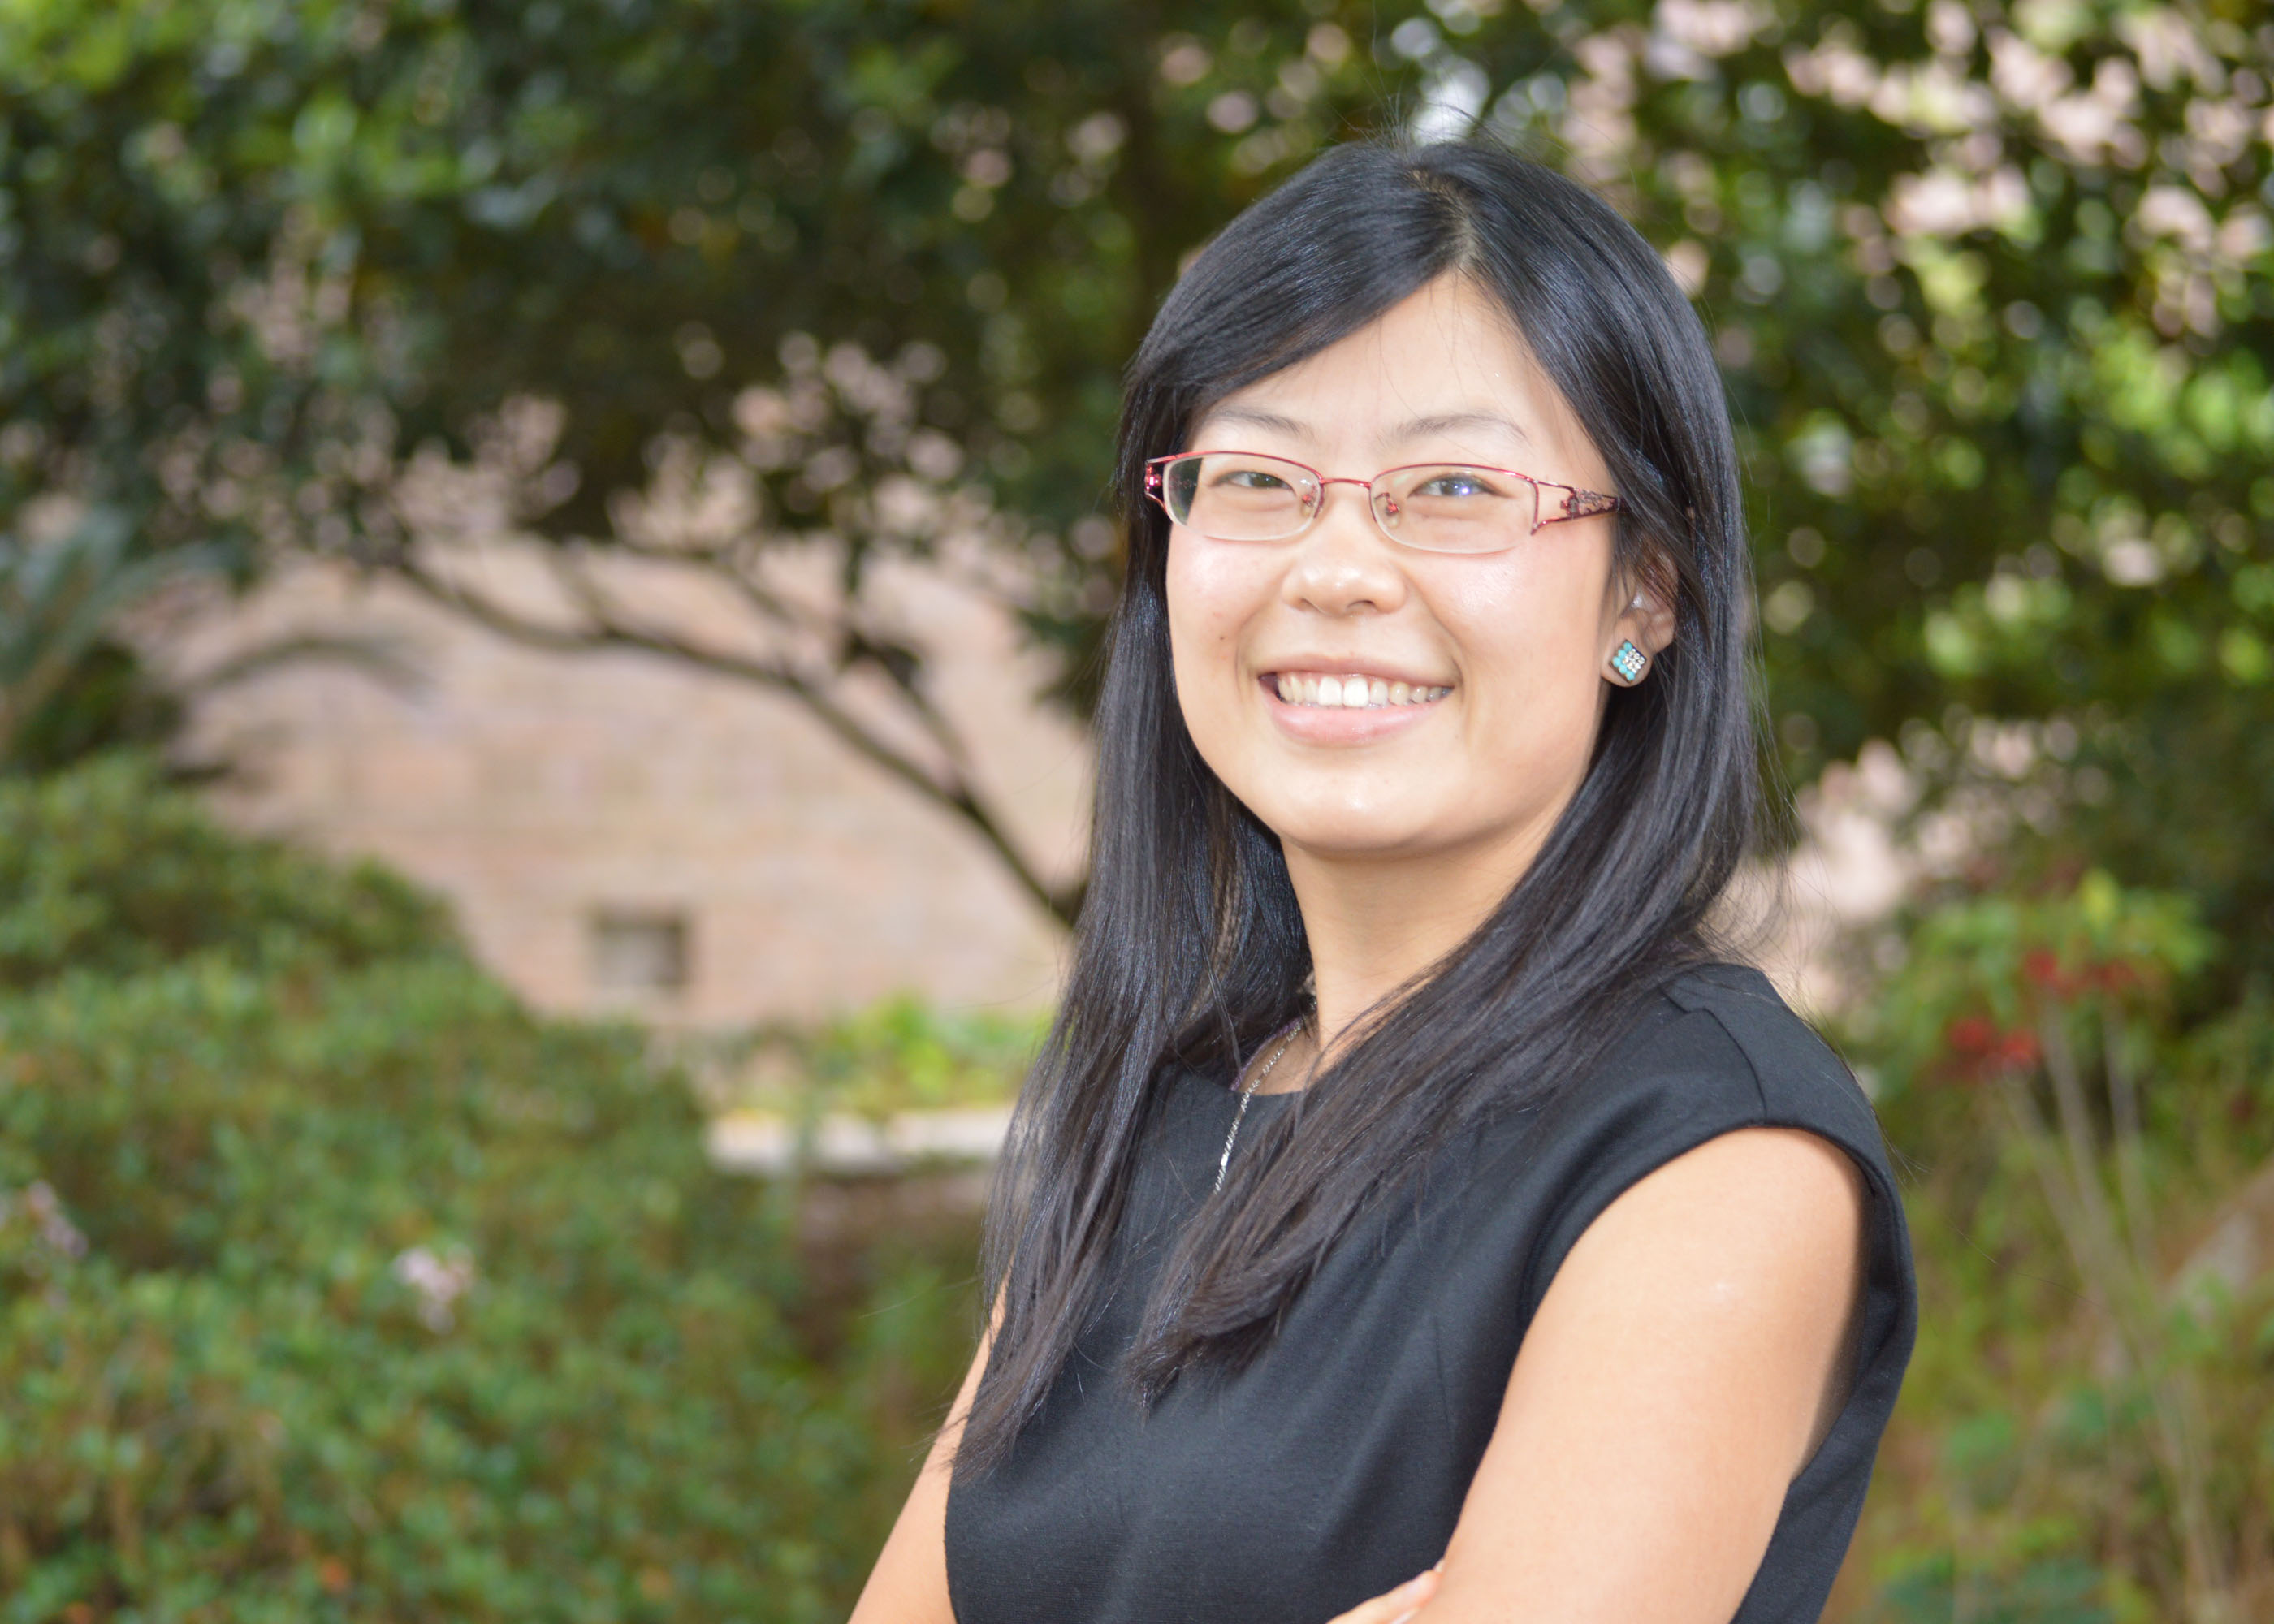 New Faculty Profile: Wenqing Xu Finds Fulfillment in Food Safety